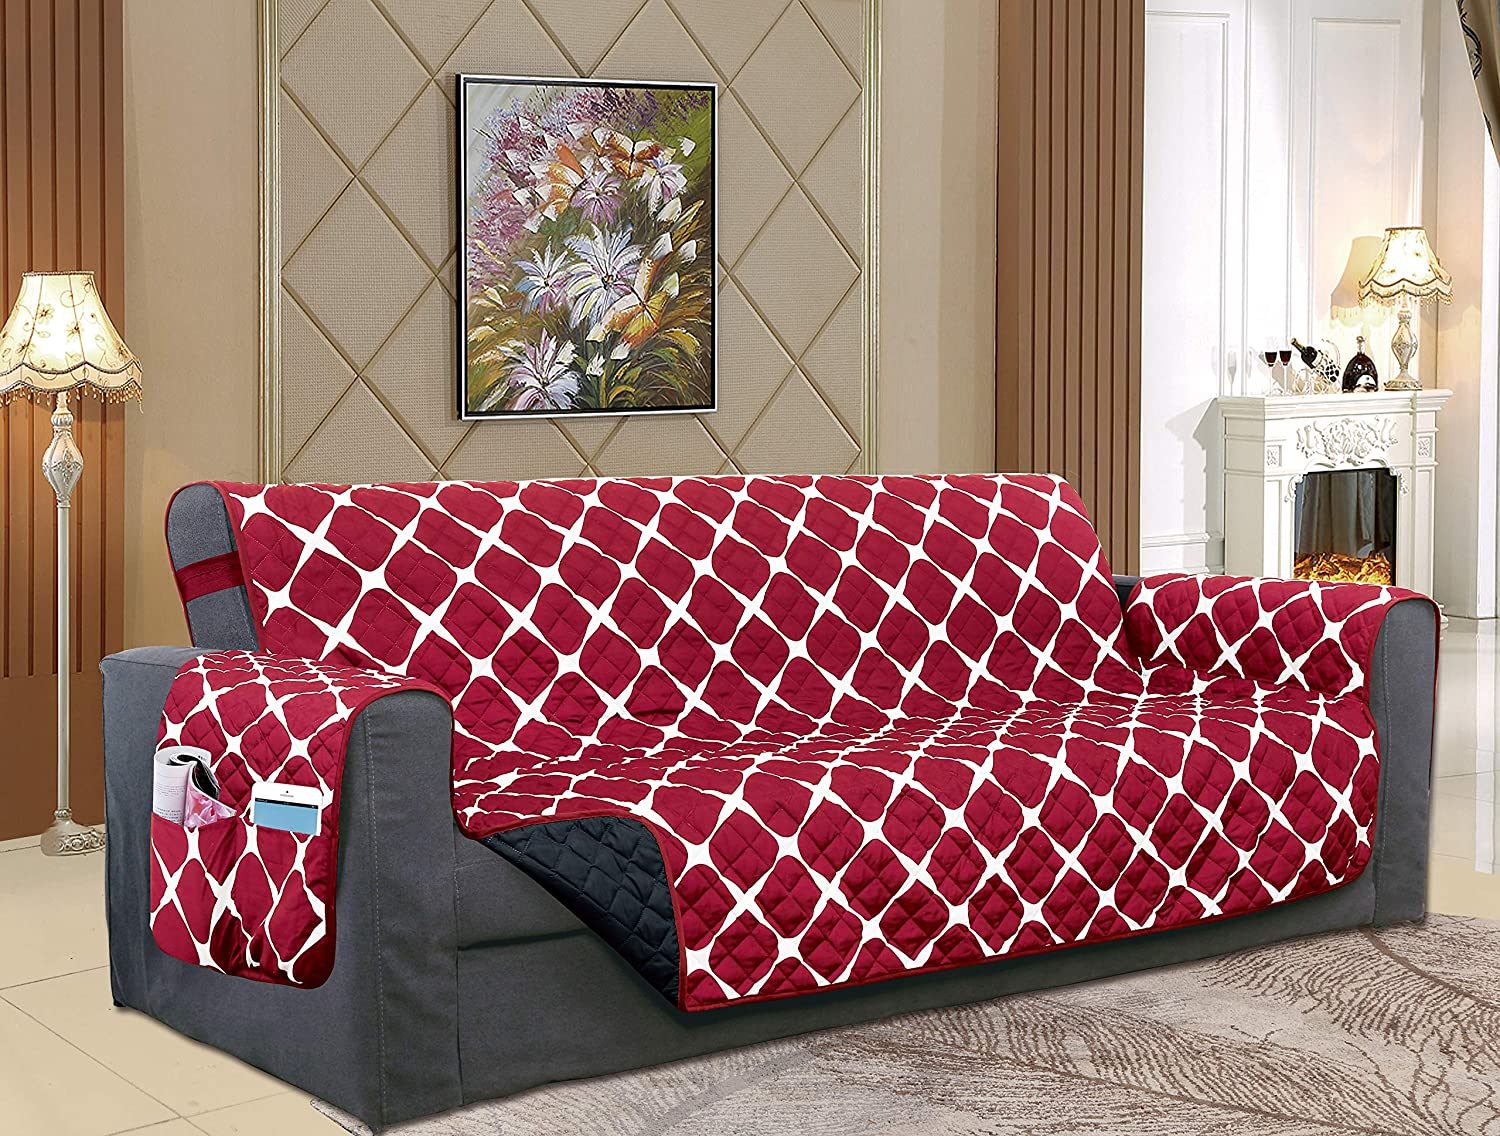 Elegant Comfort Luxury Bloomingdale Pattern Reversible 2-Tones Quilted Furniture Protector/Slipcover with Smart Pockets and Elastic Straps, Great for Pets and Kids